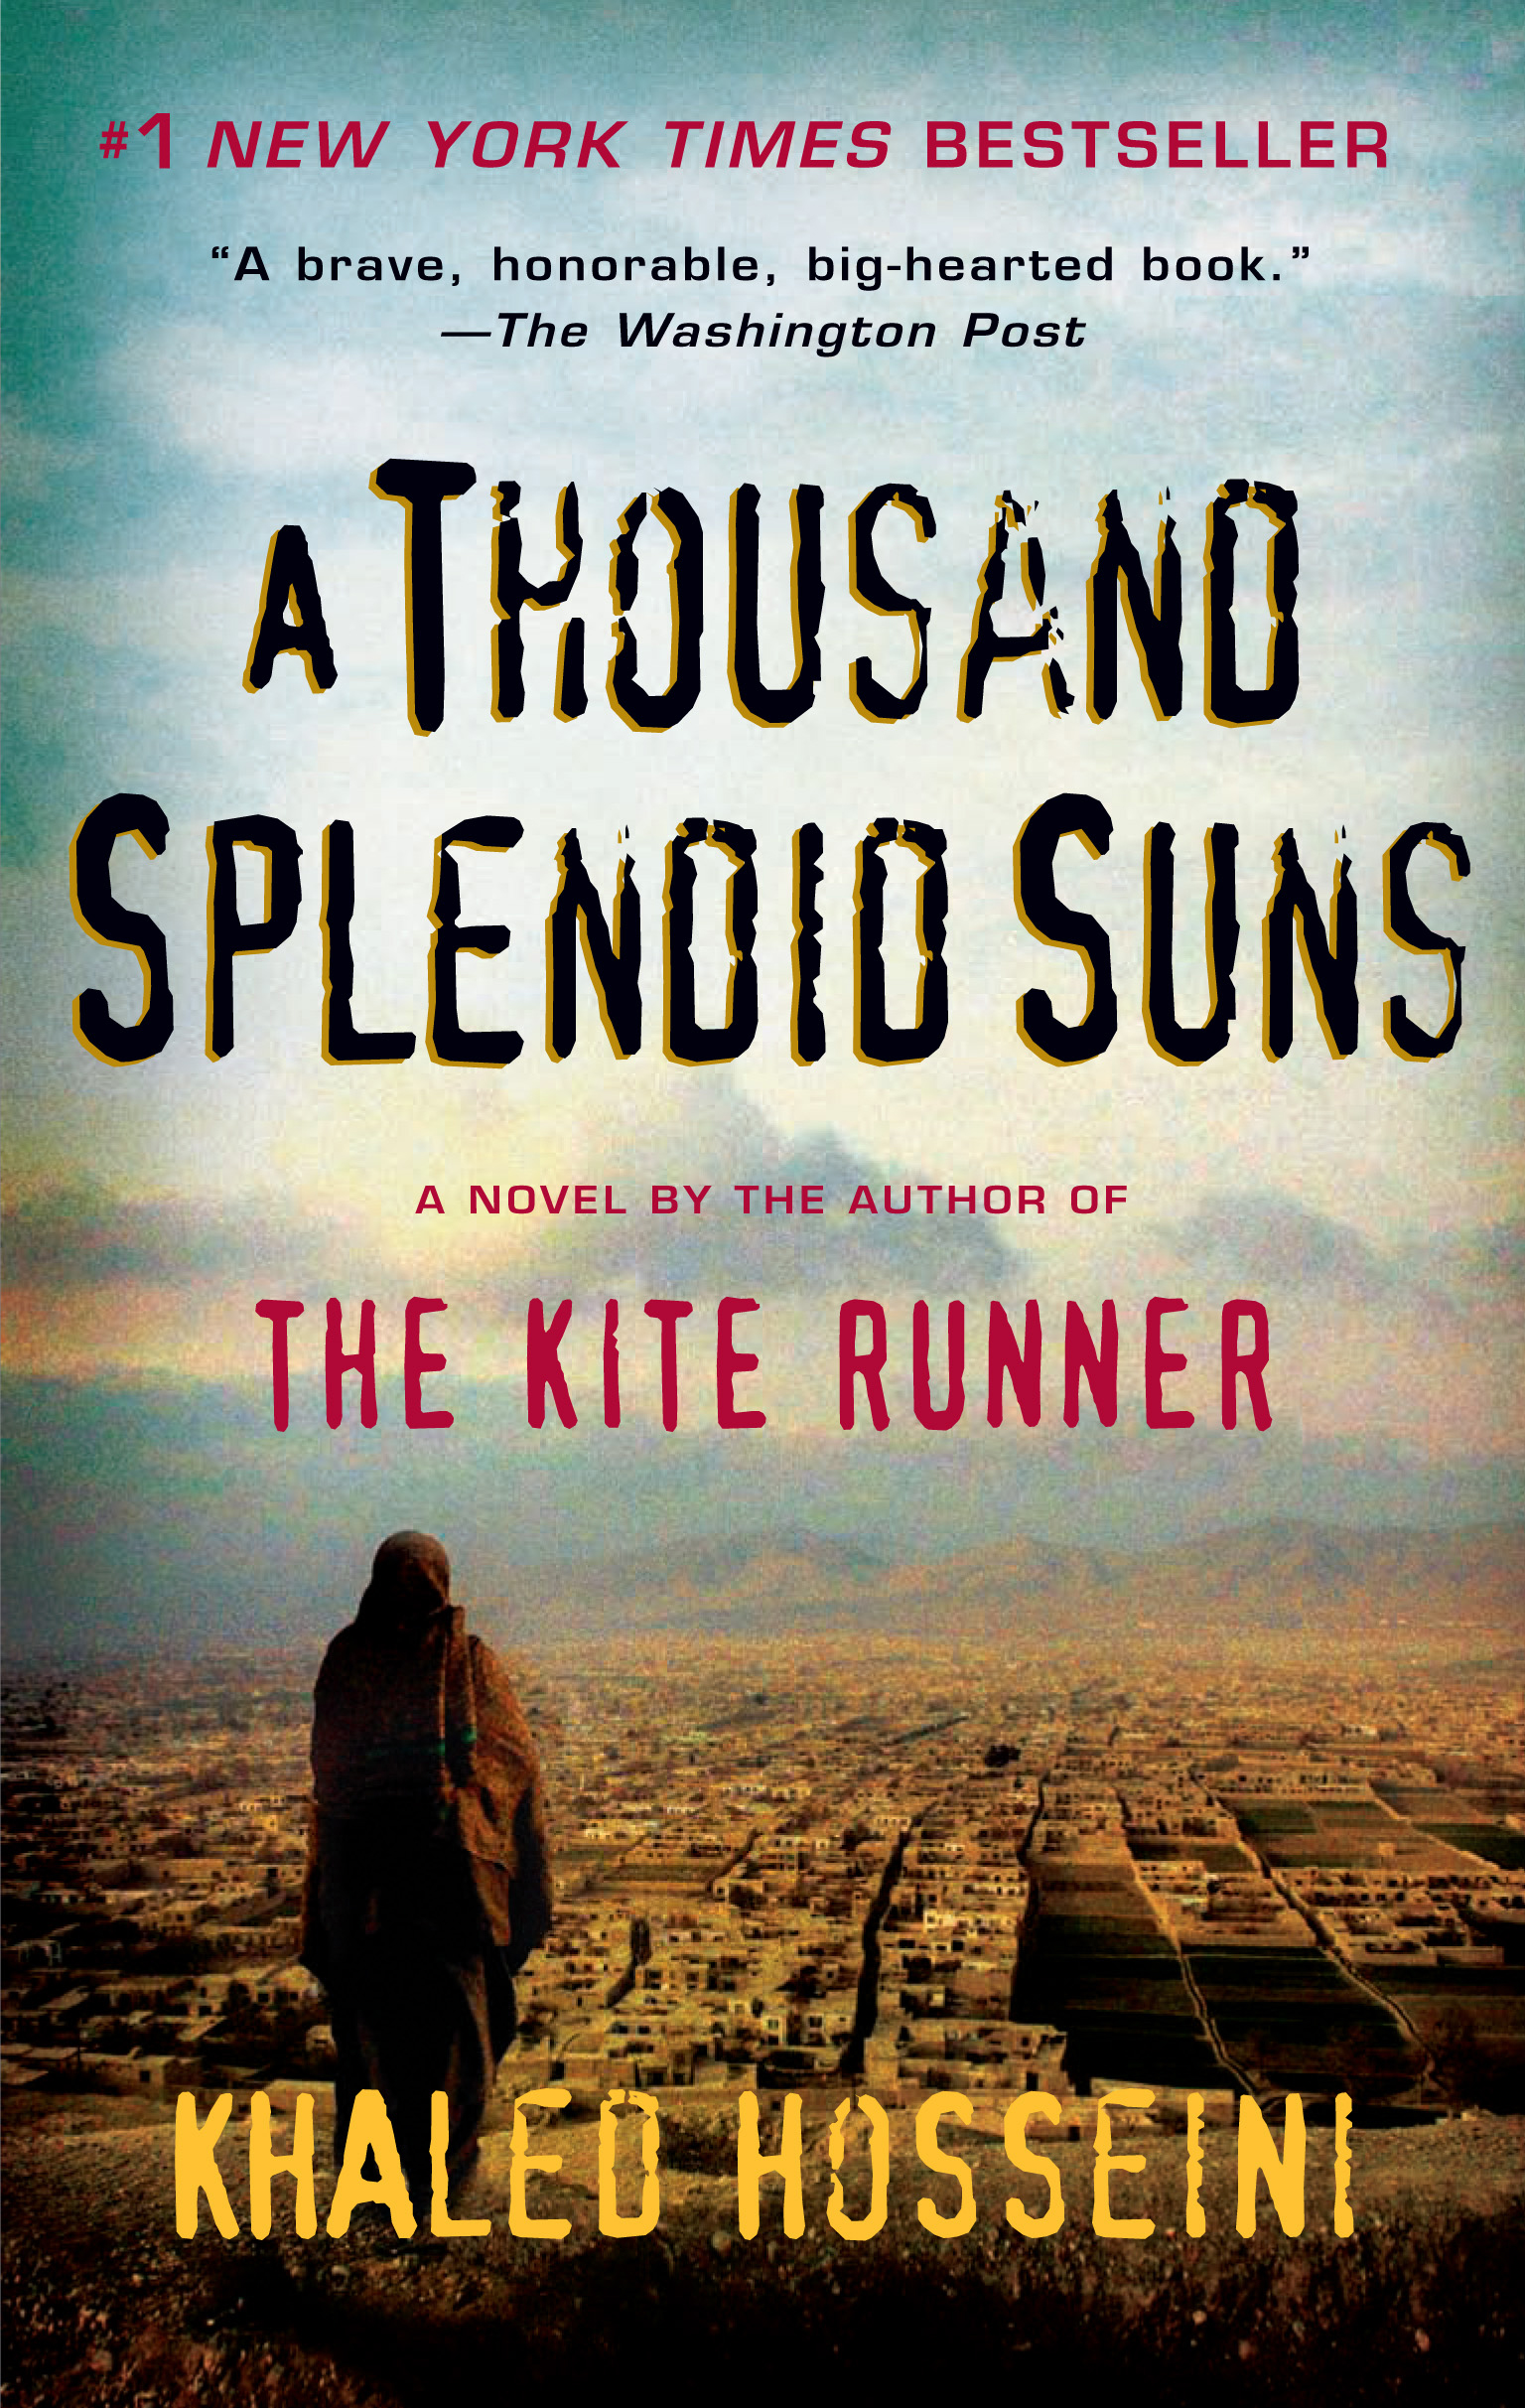 meet an international bestseller khaled hosseini northernchowk while